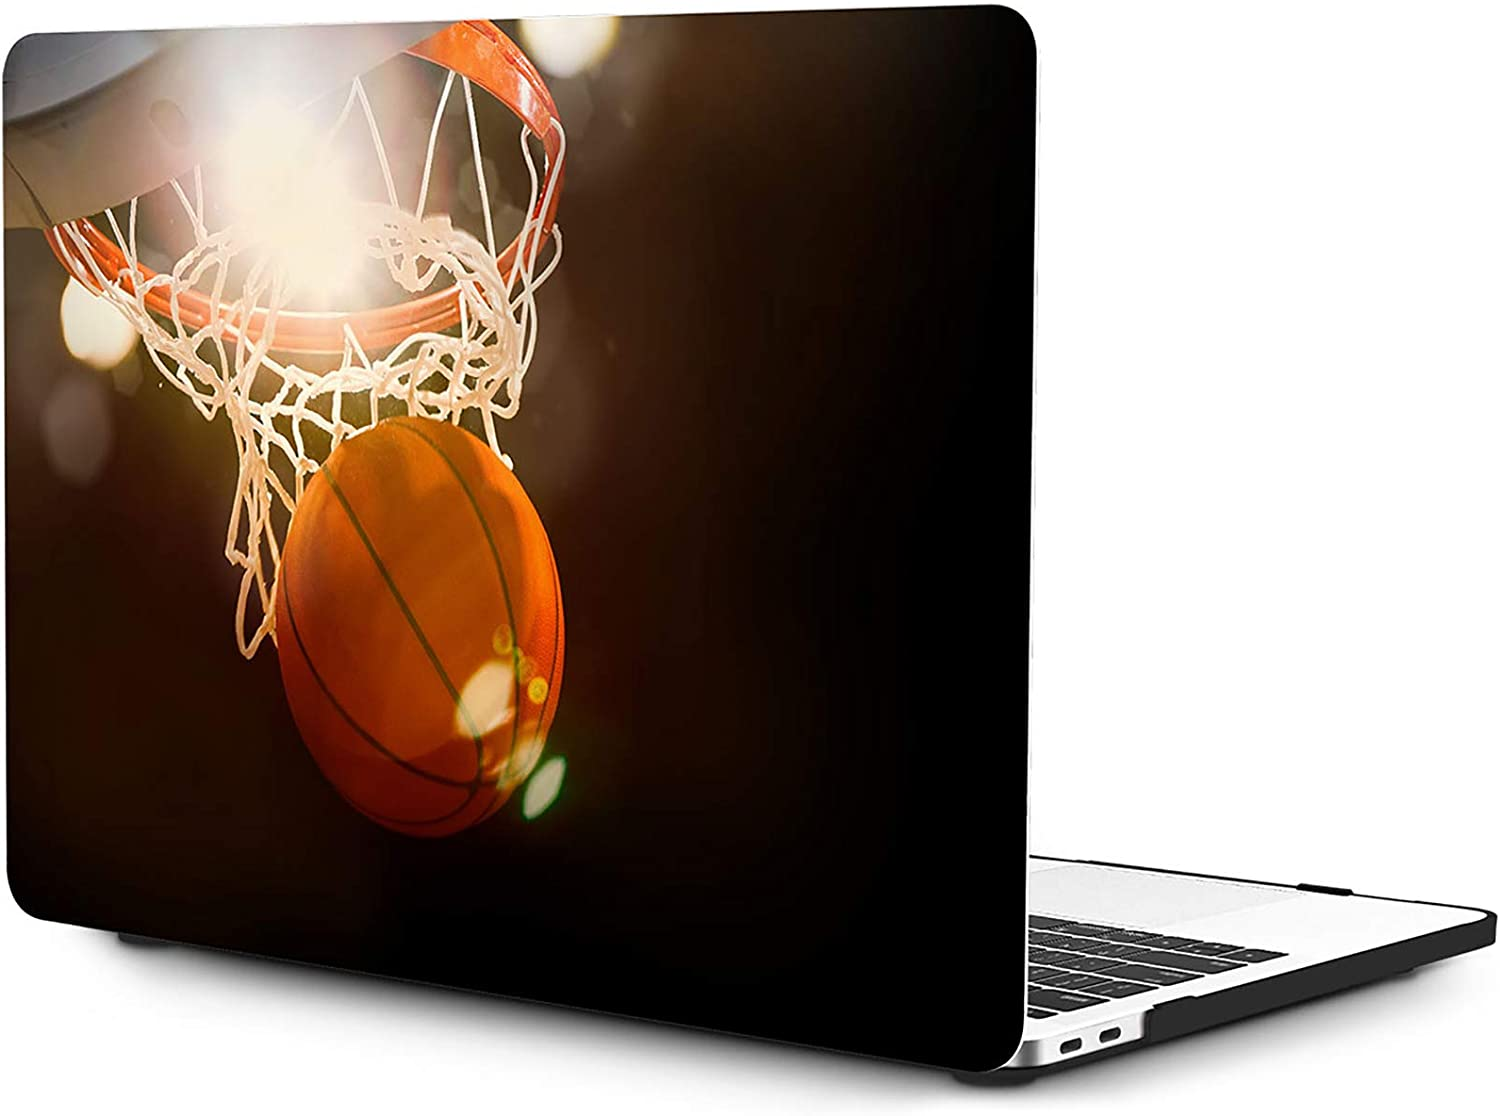 OneGET Laptop Case for MacBook Air 13 Inch Case 2018 MacBook Air 13 inch Release A1932 with Retina Display Computer Case Hard Shell MacBook Air 13 Case with Touch ID Basketball (S29)